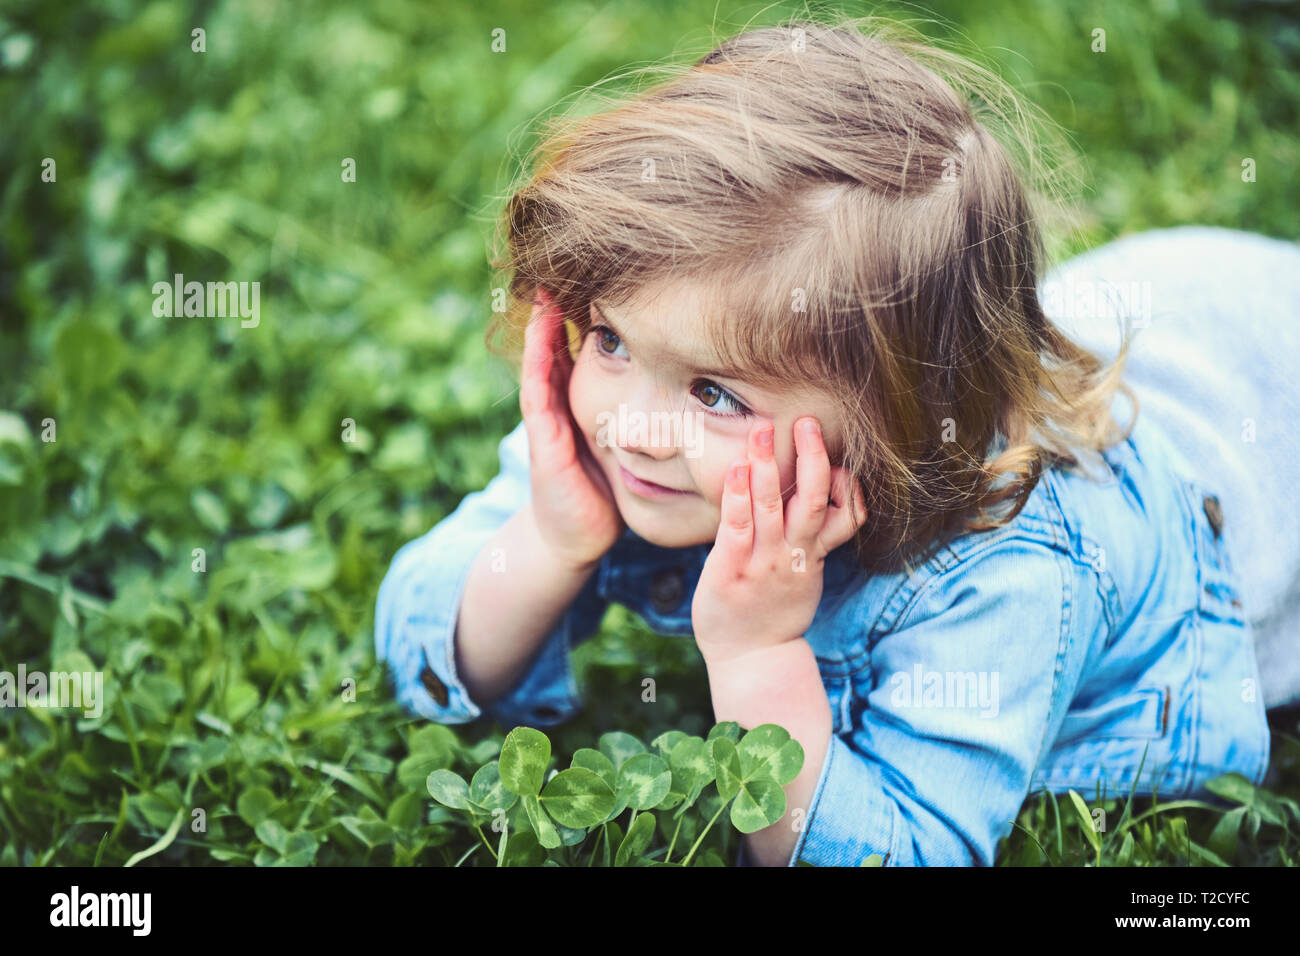 Cute child smile on green grass lawn. Little girl relax on spring or summer day outdoor. New life, youth, growth. Vitality, wellness, health, lifestyl - Stock Image